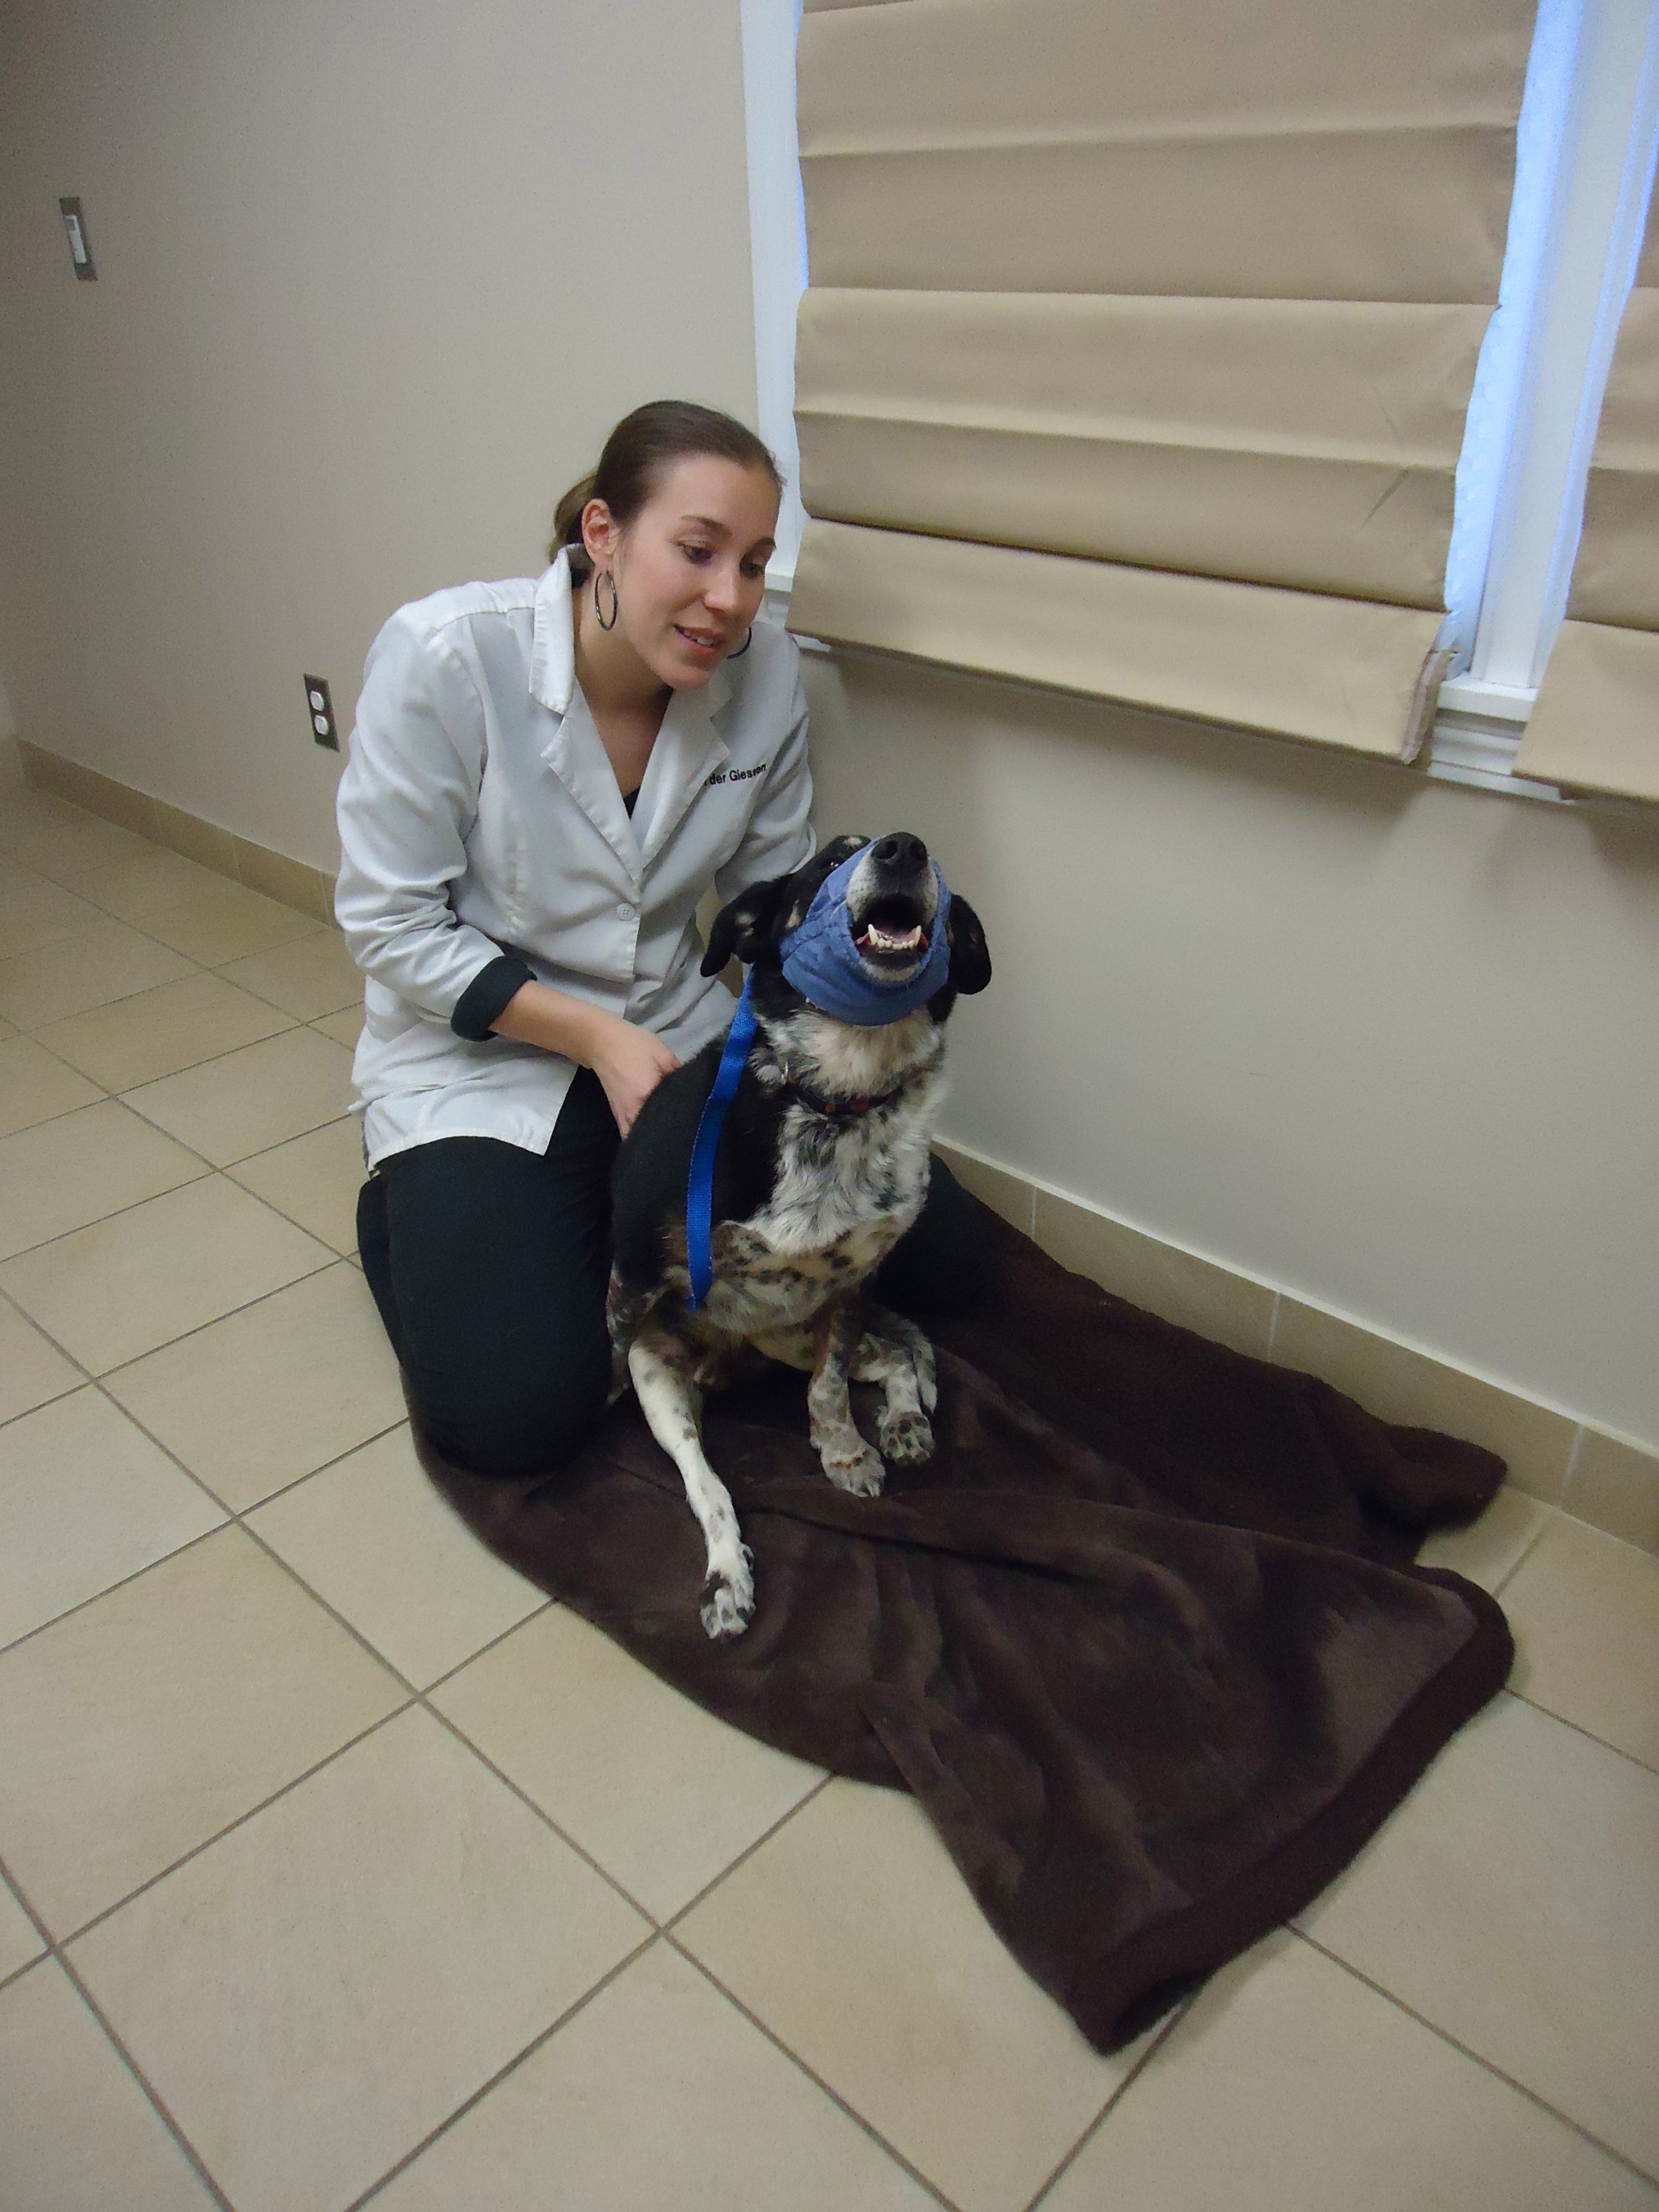 Roaring Brook Veterinary Hospital and Kennels